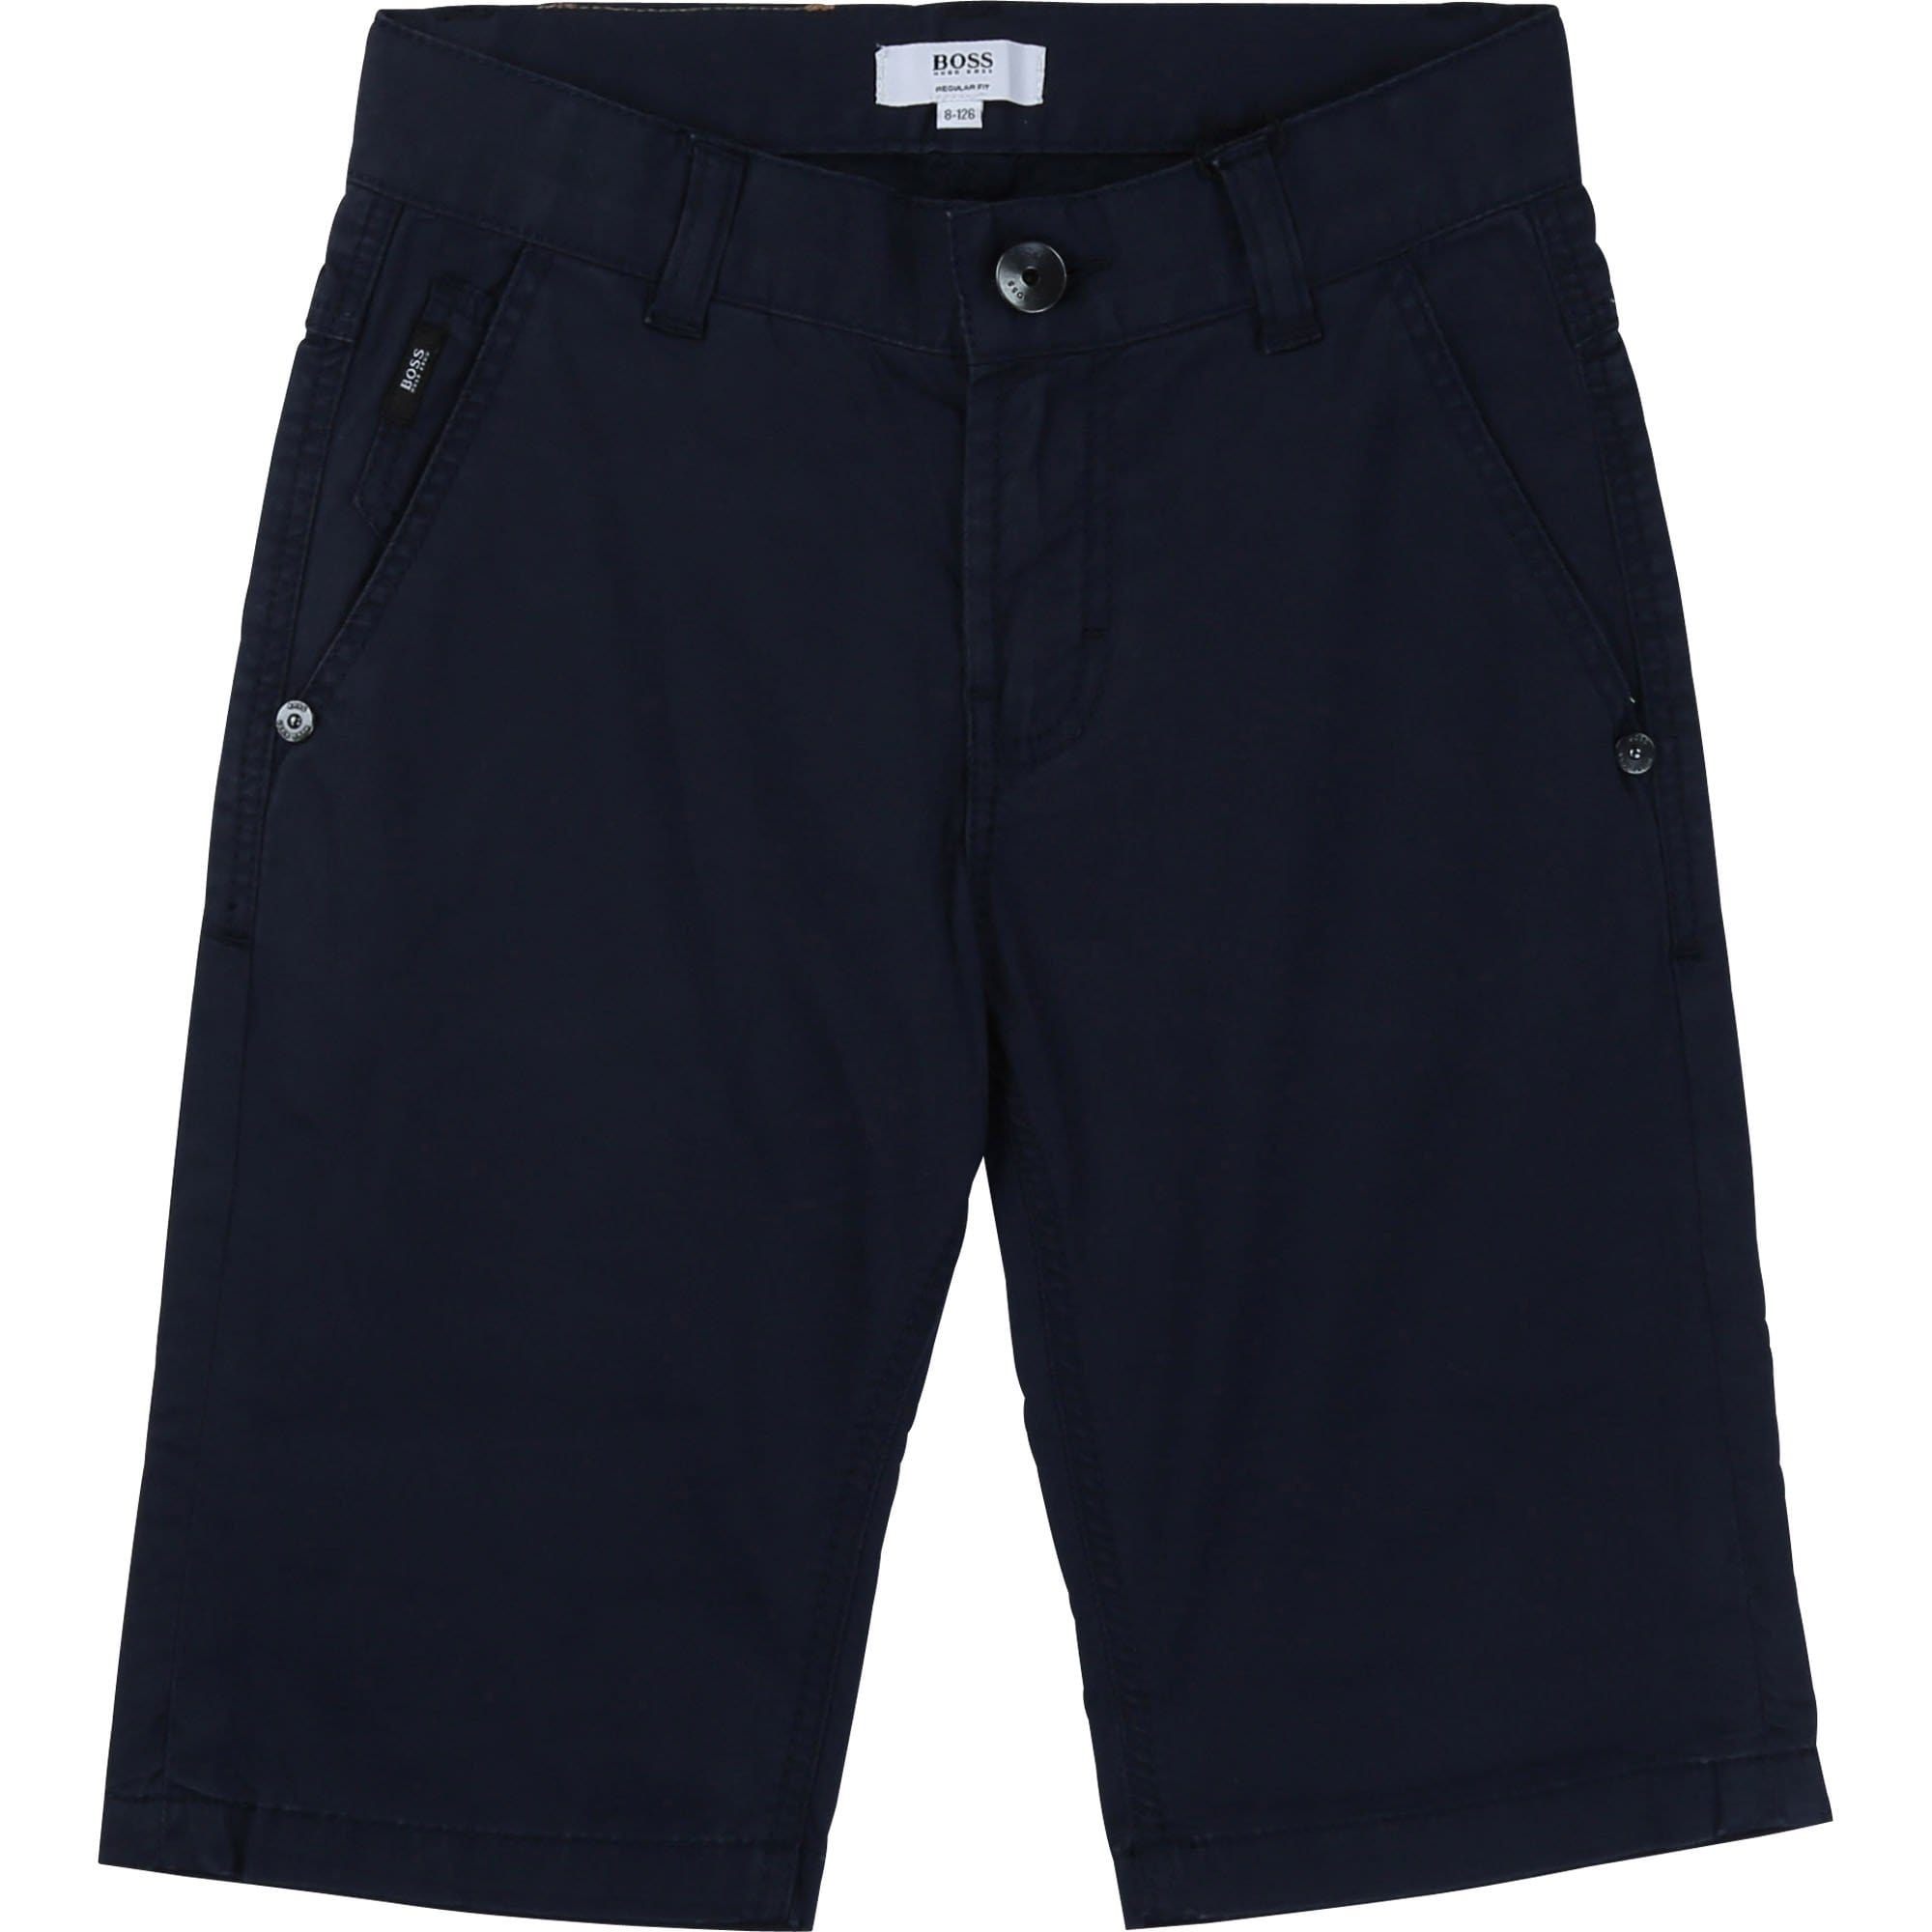 Hugo Boss Chino Shorts - Navy J24629/849